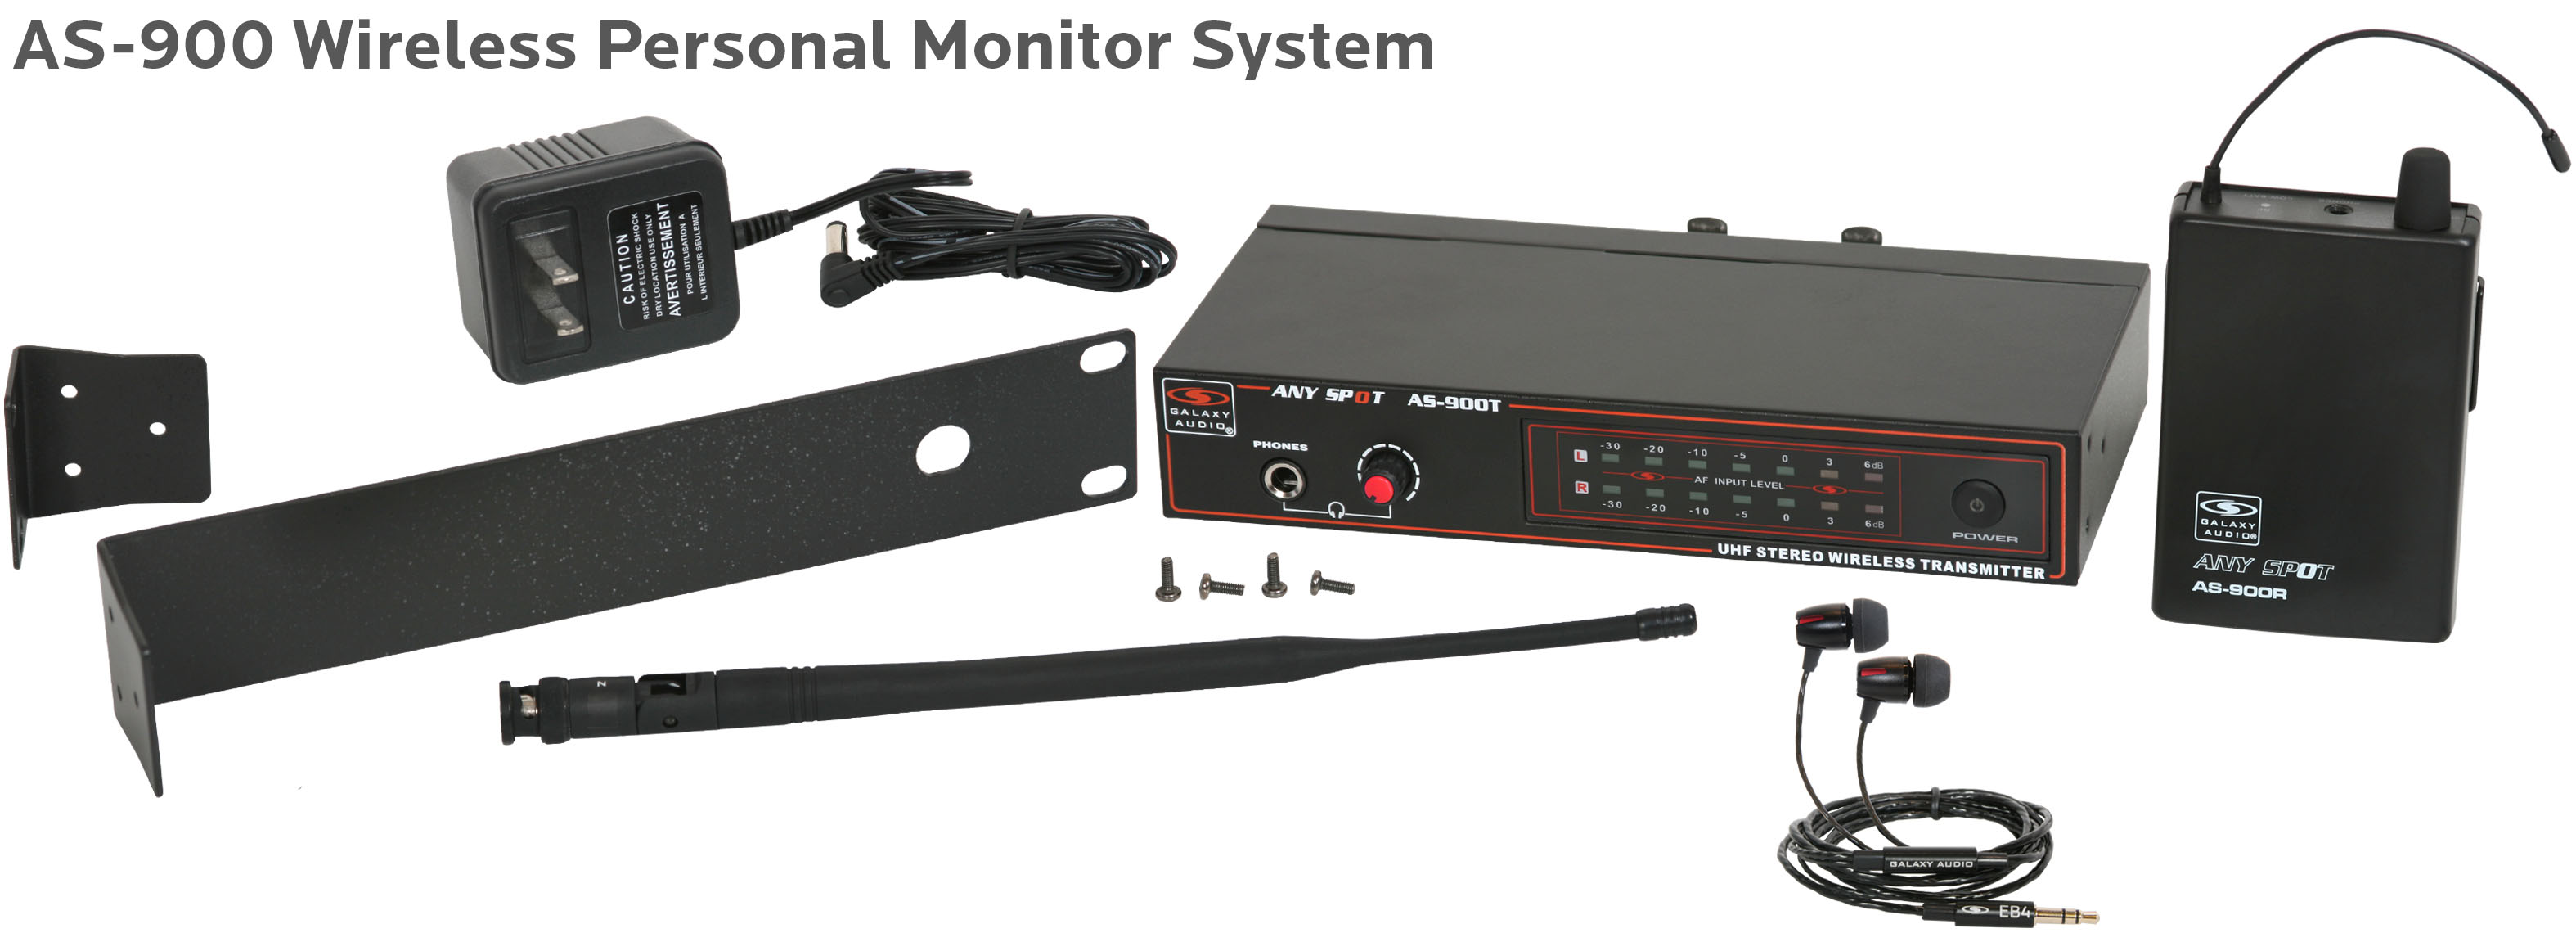 AS-900 Wireless Personal Monitor System